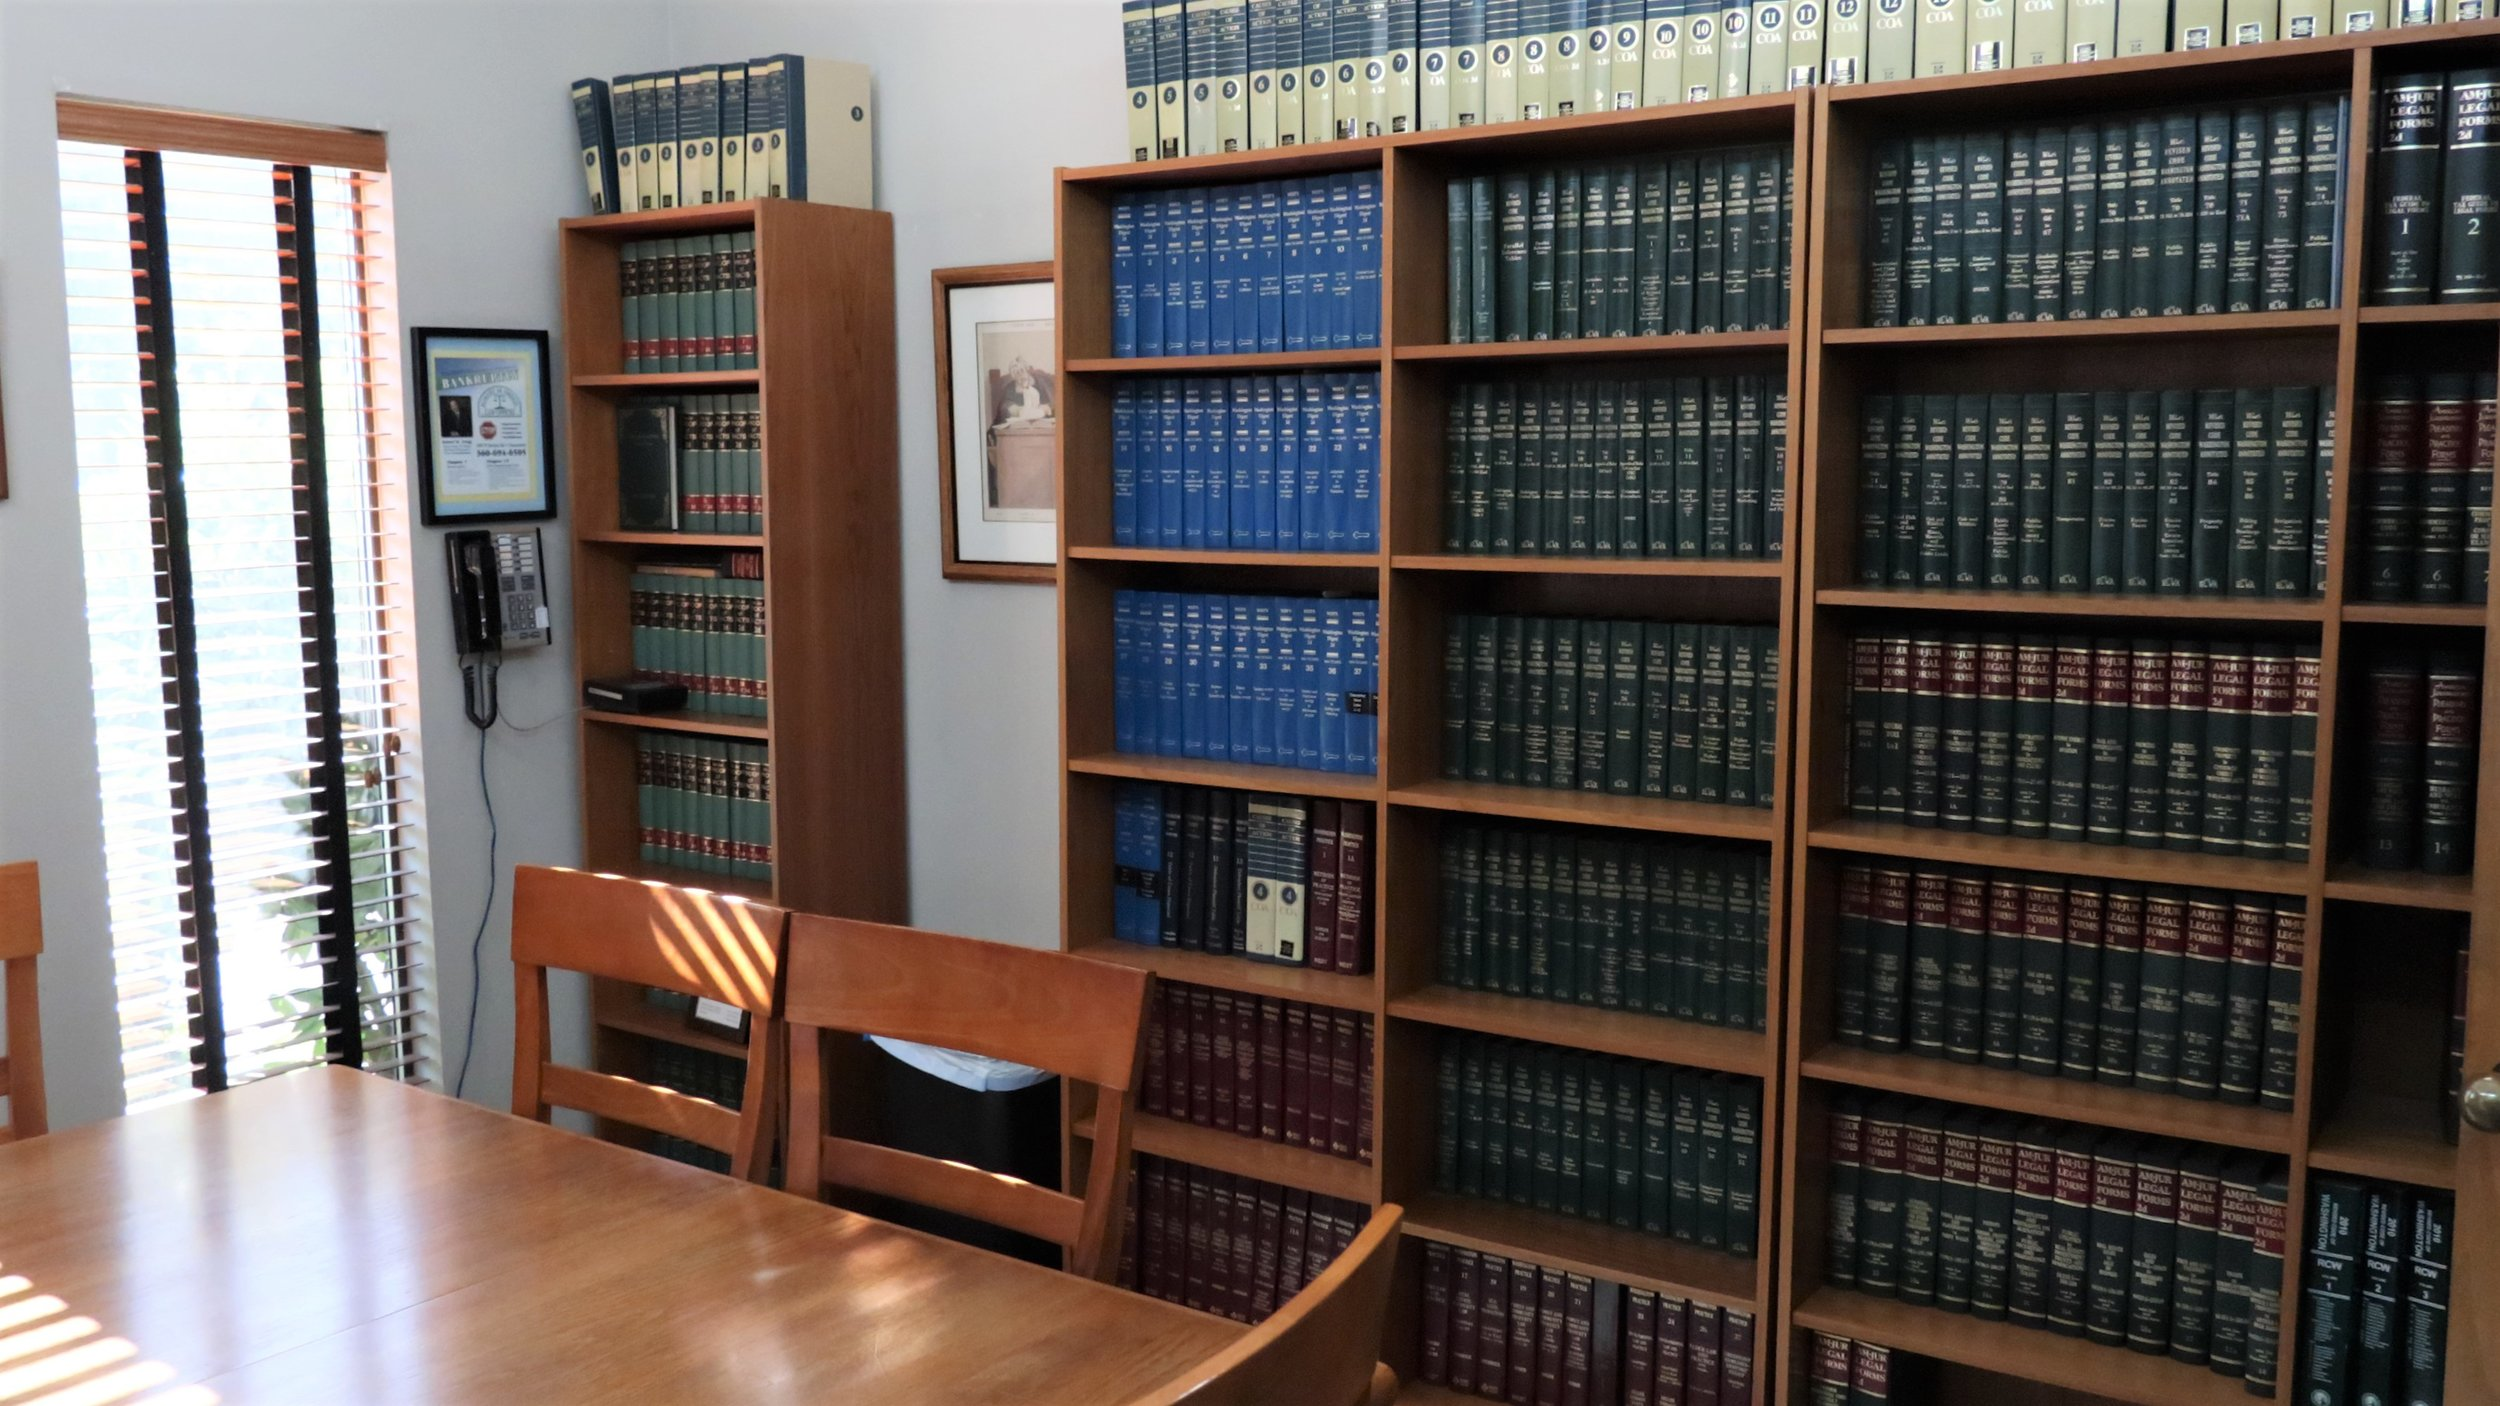 Our extensive, on-site legal library allows us research case law at a moment's notice.